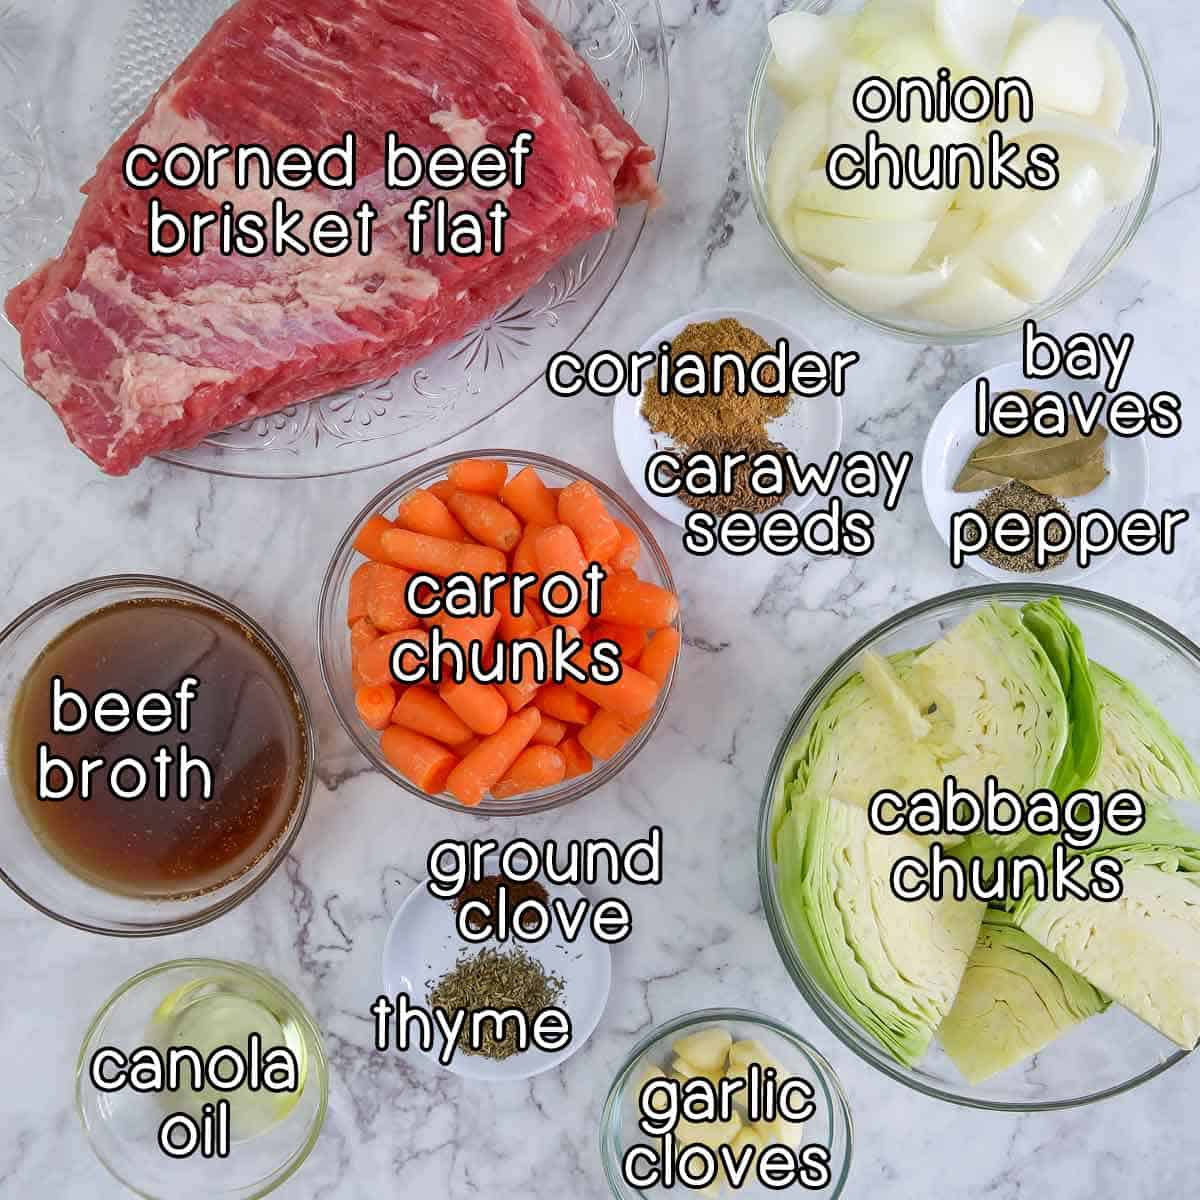 Overhead shot of ingredients- corned beef brisket flat, onion chunks, beef broth, carrot chunks, cabbage chunks, garlic cloves, canola oil, coriander, caraway seeds, bay leaves, pepper, ground clove, and thyme.